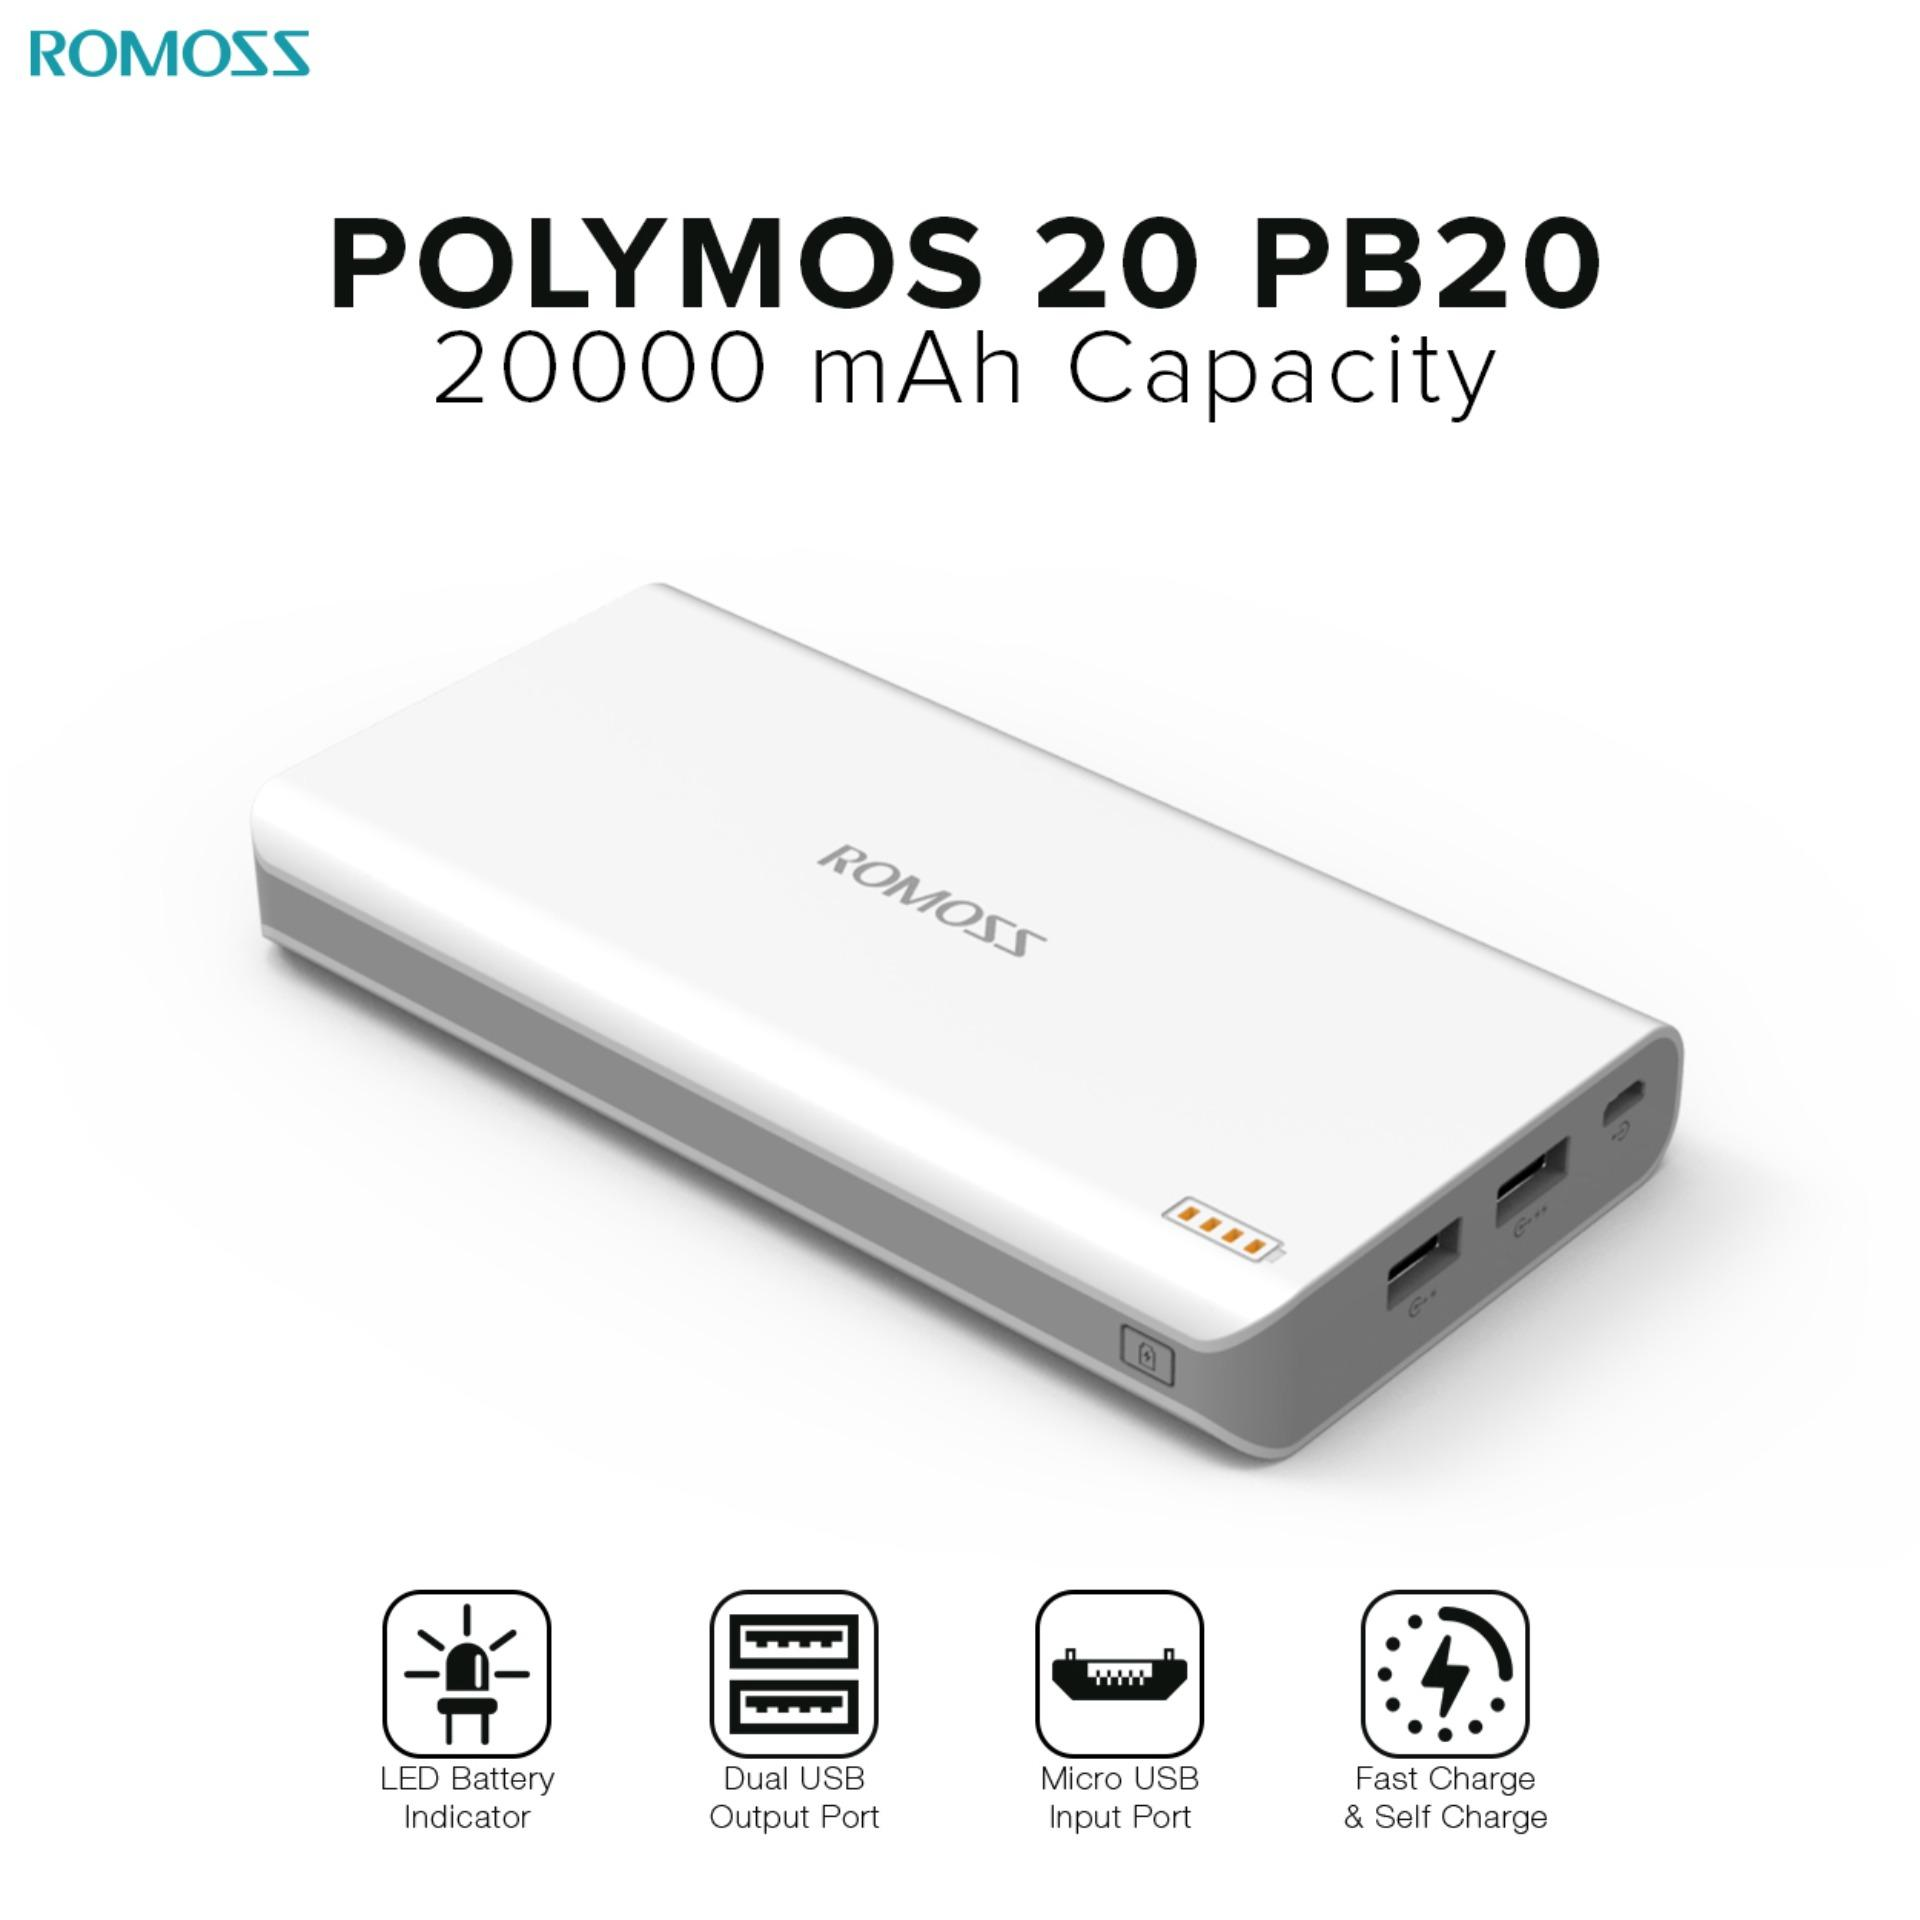 Buy Phone Tablet Batteries Chargers In Philippines Lazada Charger Mobil Car Saver Usb For Smartphone Romoss Polymos 20 Pb20 20000mah Fast Charging Power Bank White